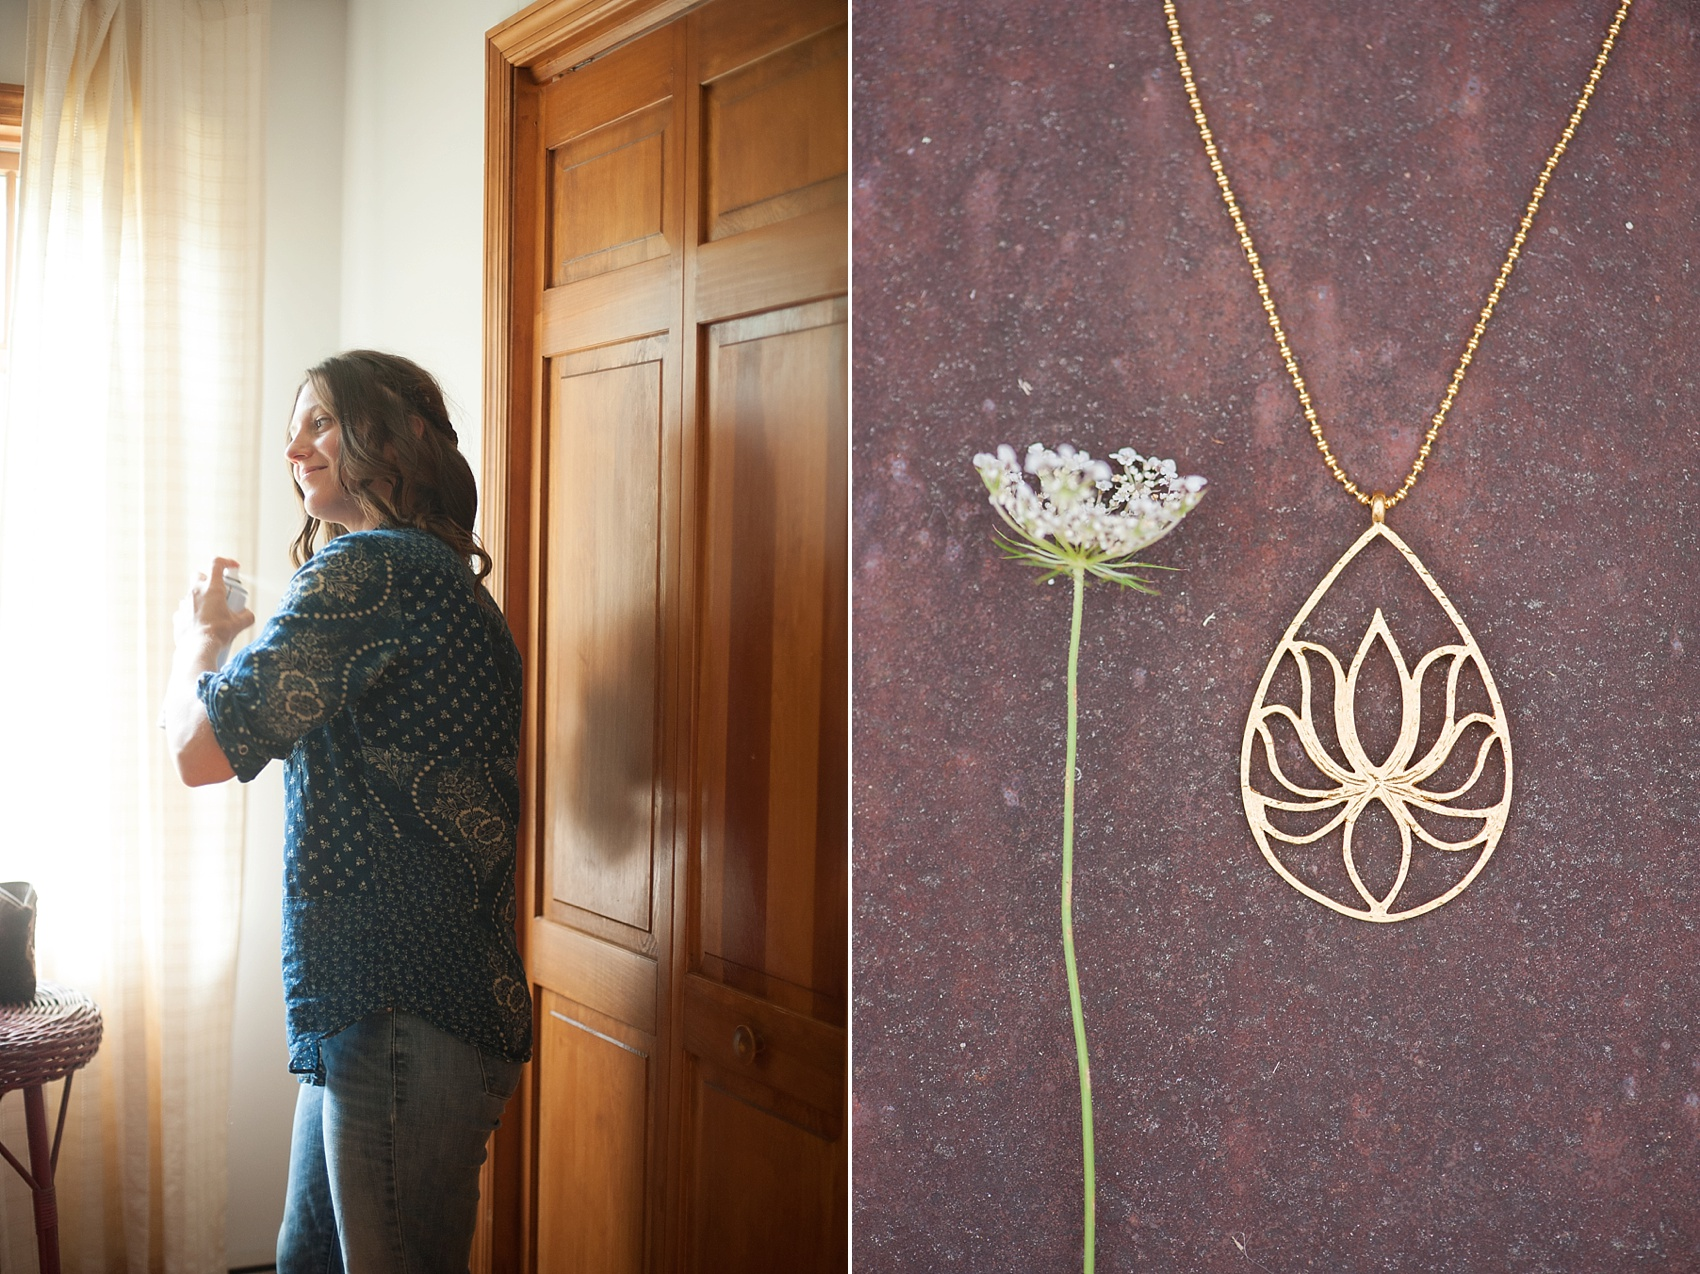 Satya lotus necklace for the bride, as she gets ready for her Berkshires wedding at Camp Wa Wa Segowea. Photos by Mikkel Paige Photography, destination wedding photographer.